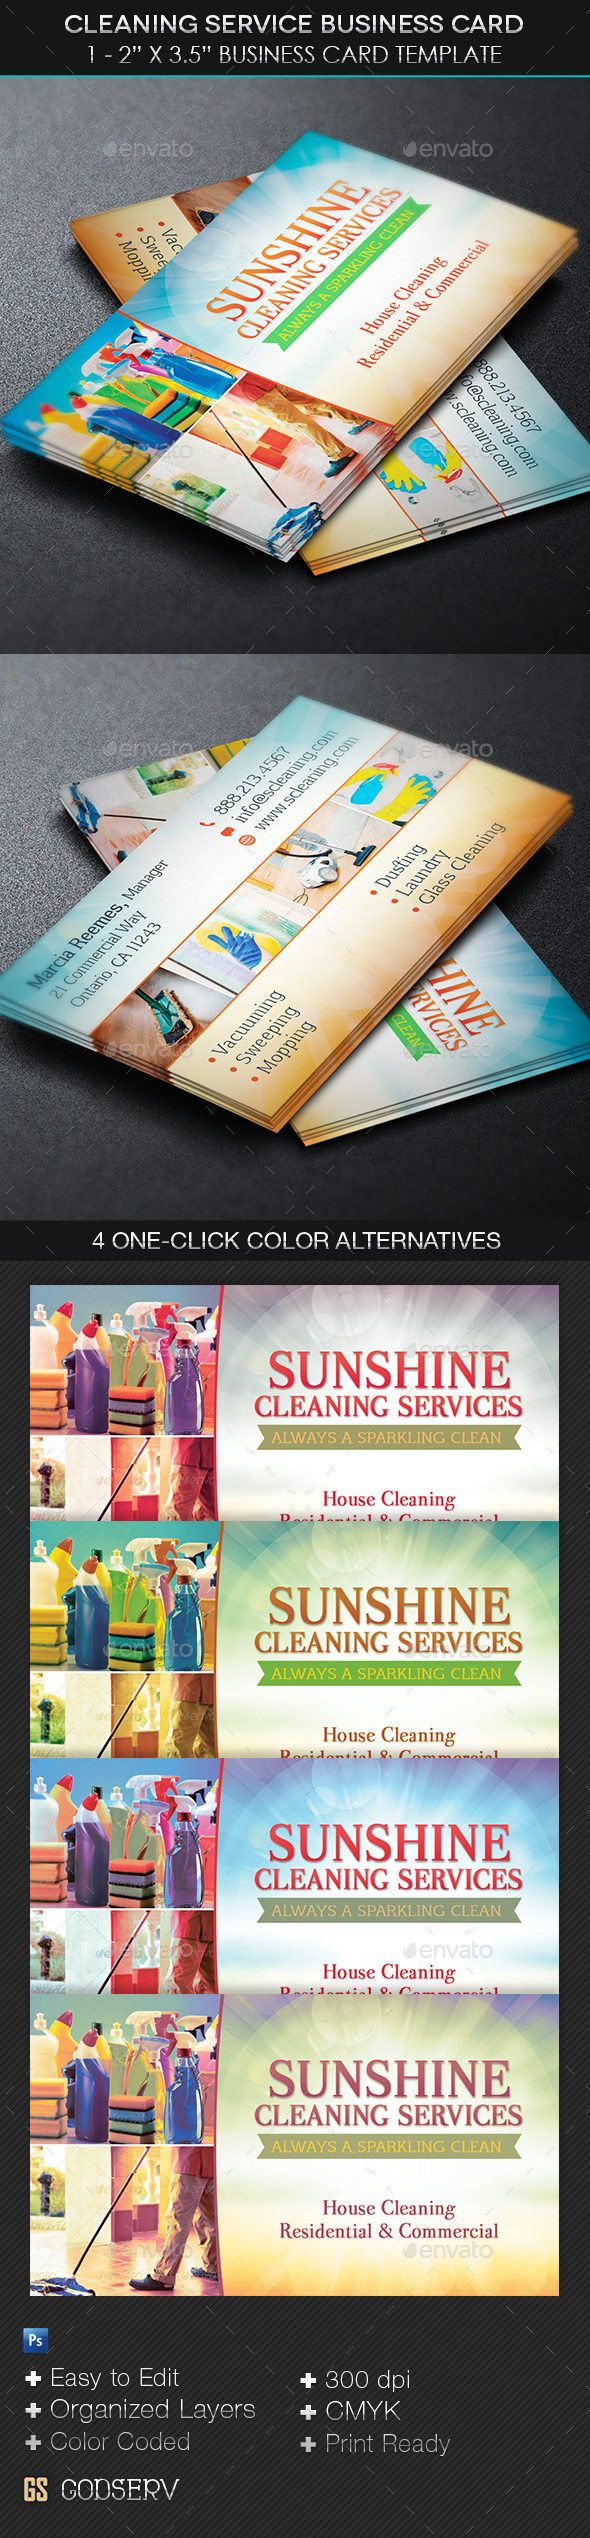 The 25 best cleaning service logo ideas on pinterest make a cleaning service business card template magicingreecefo Gallery